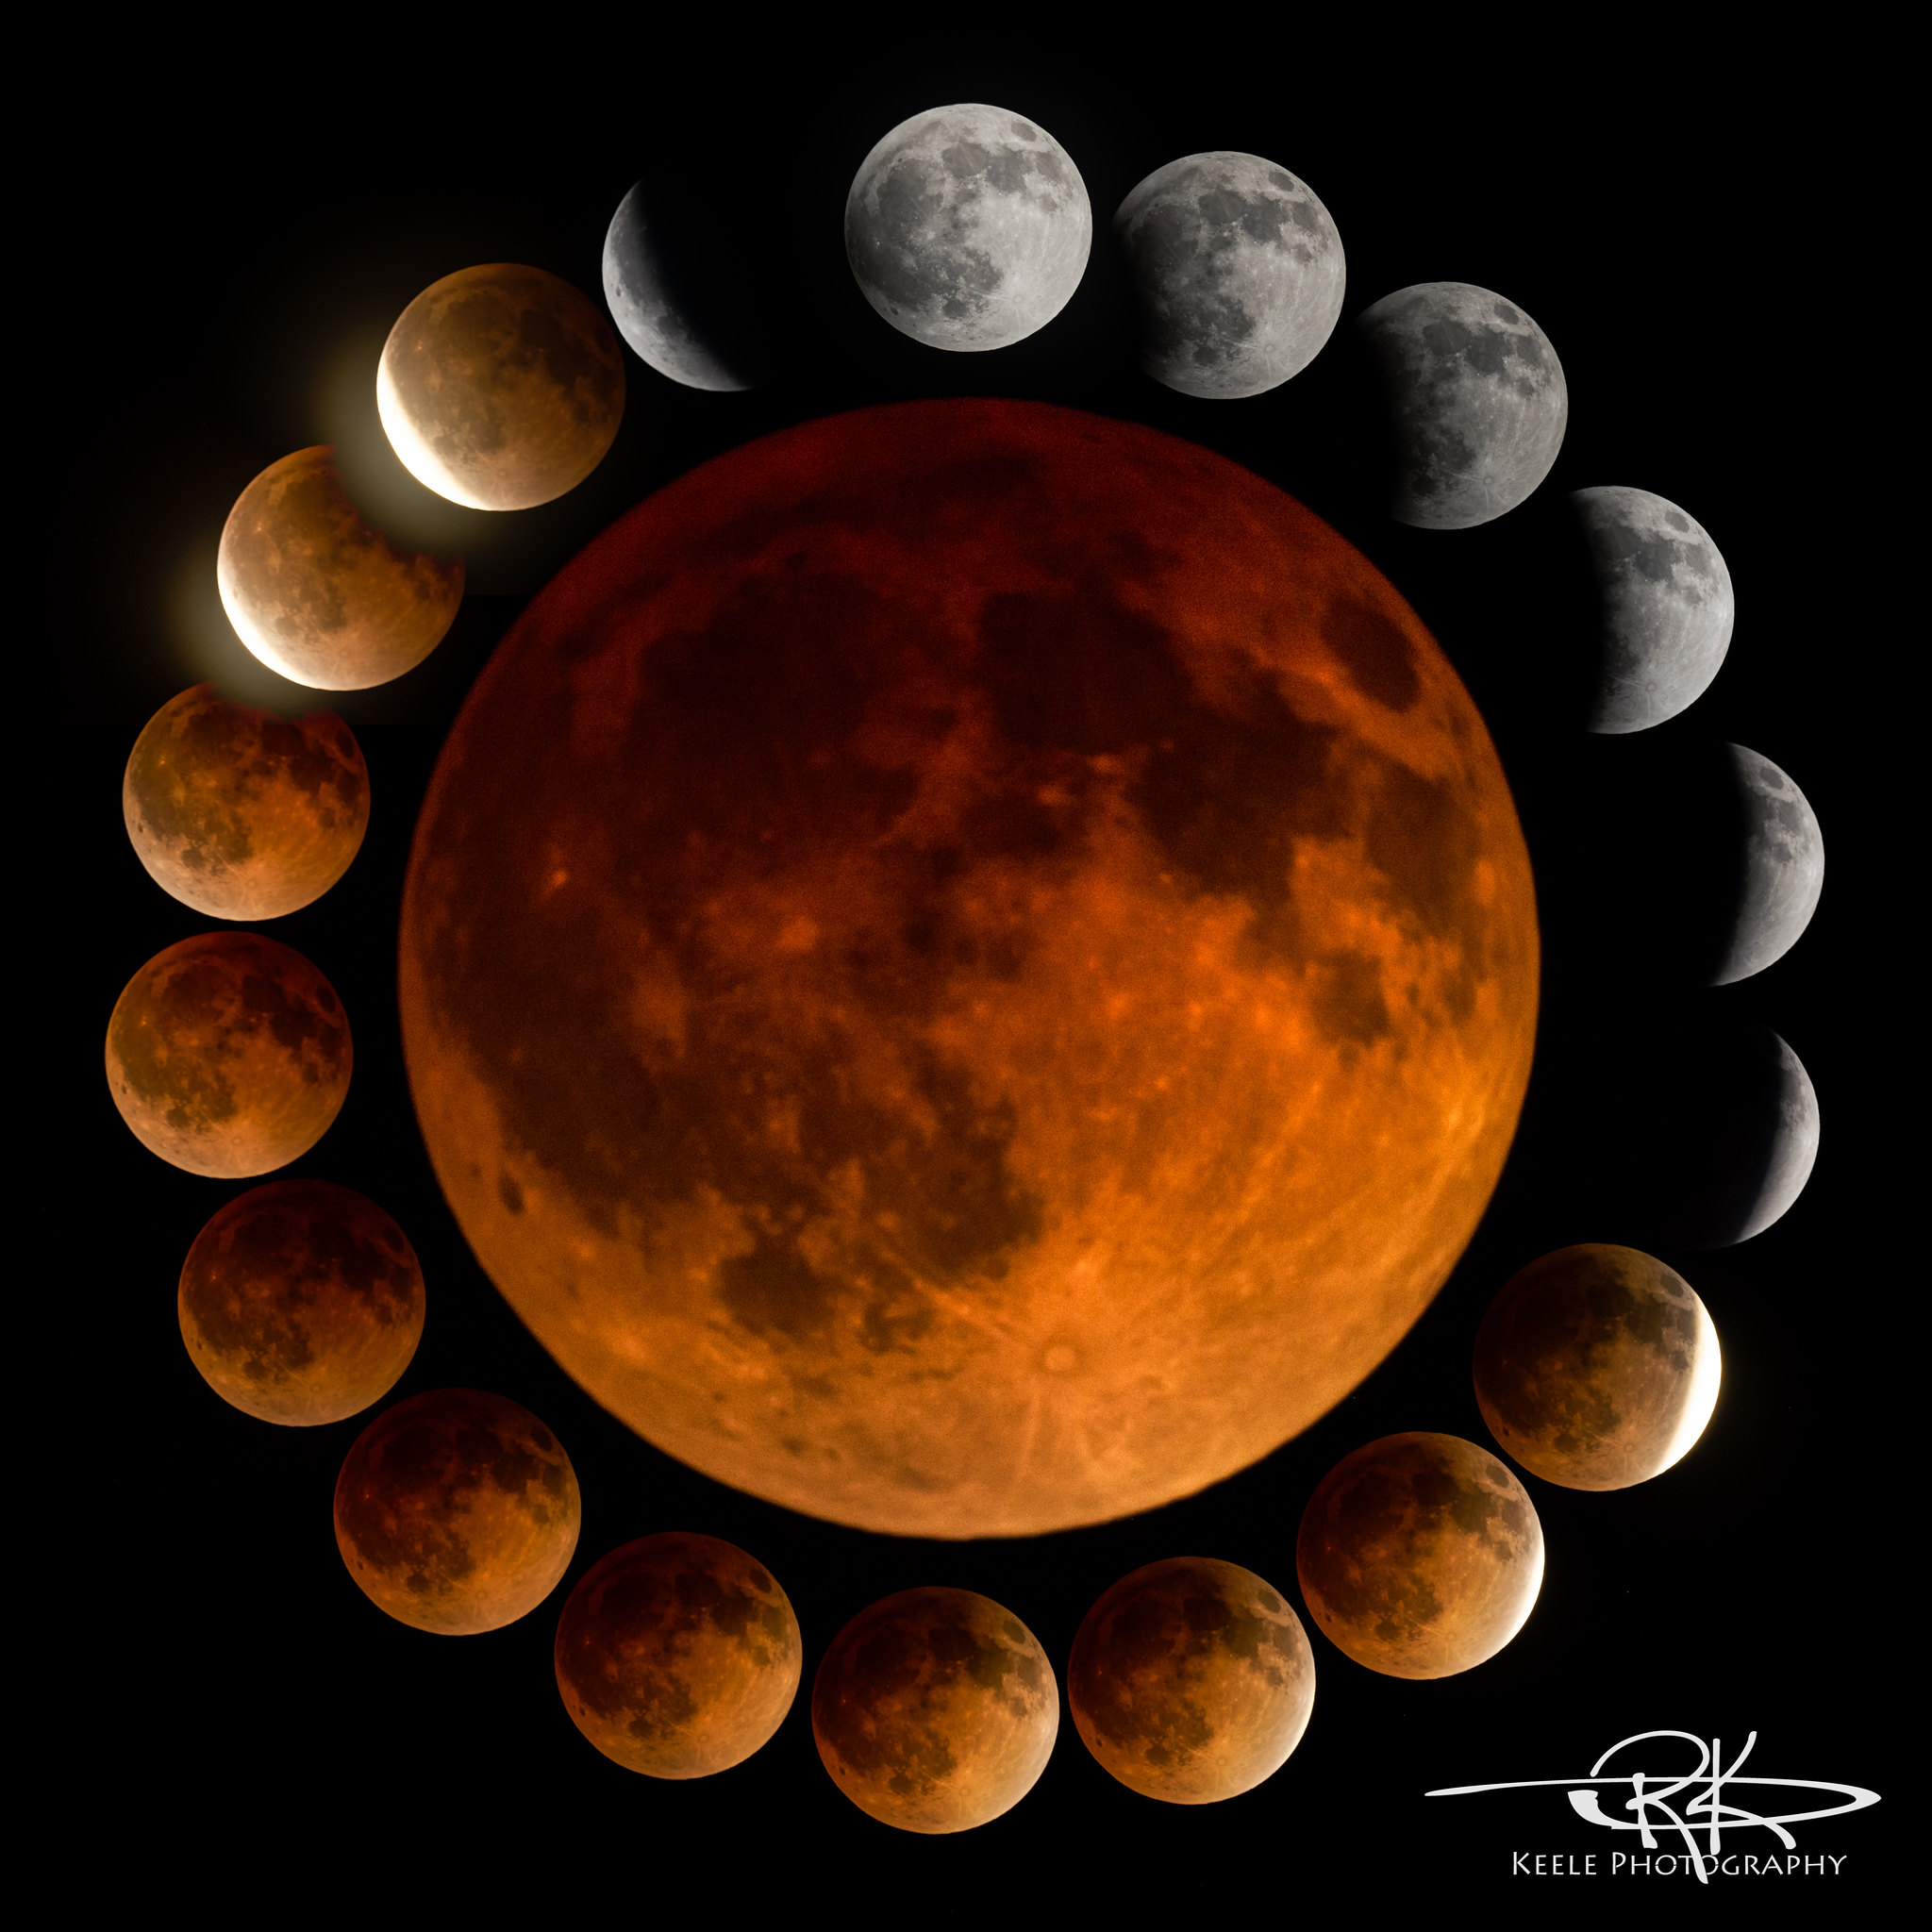 blood moon day today - photo #12